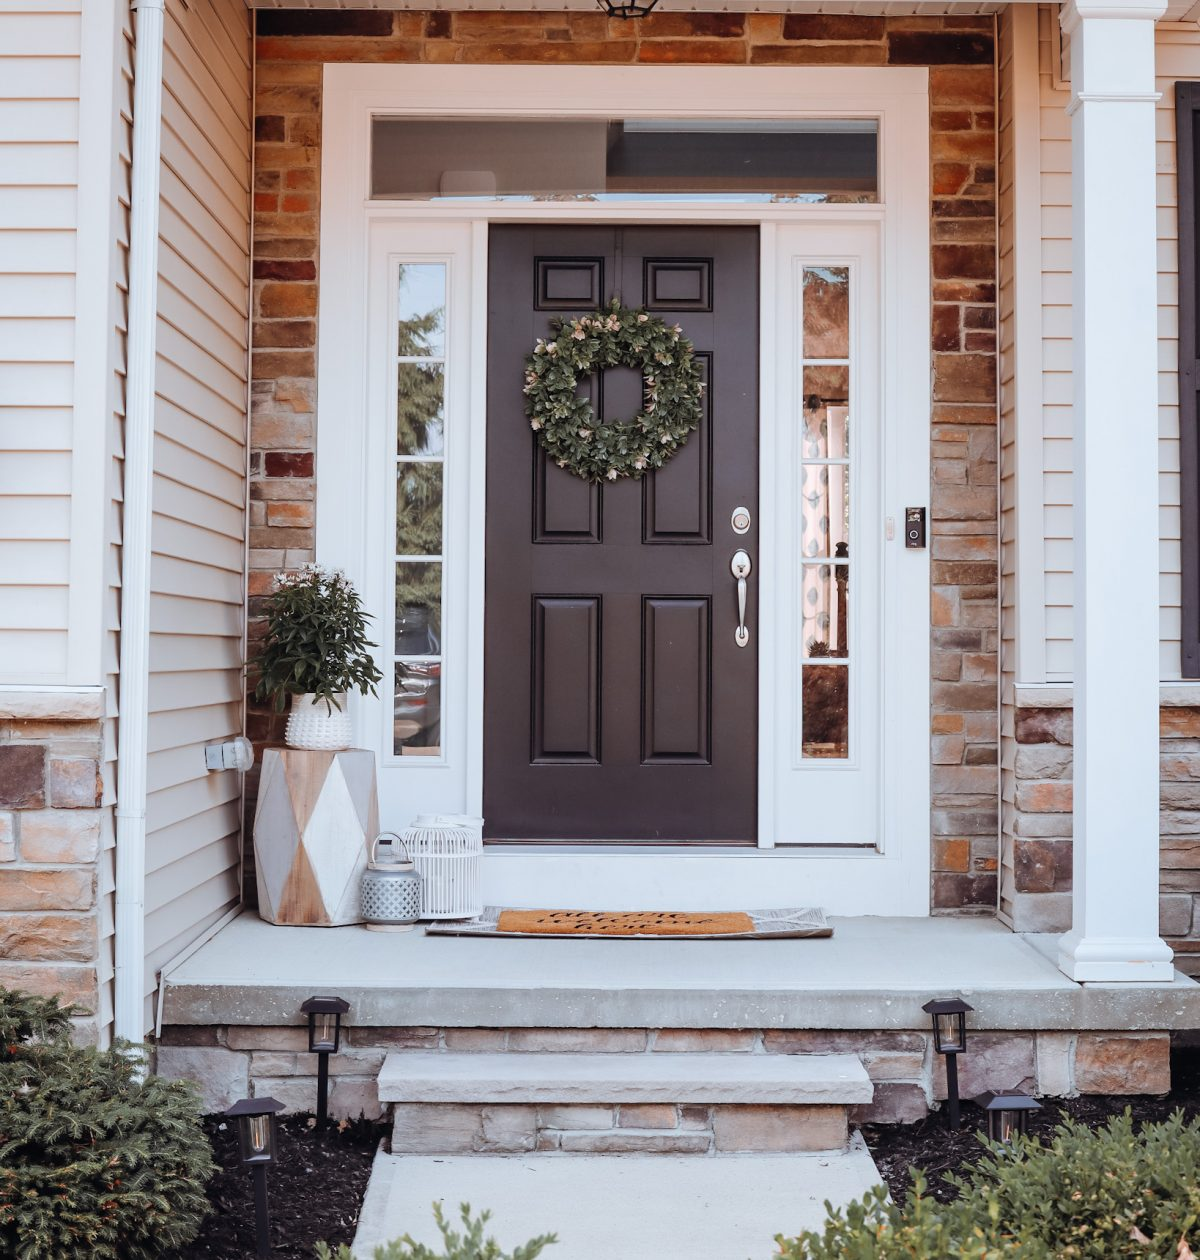 A picture of a small front porch with front porch decor.